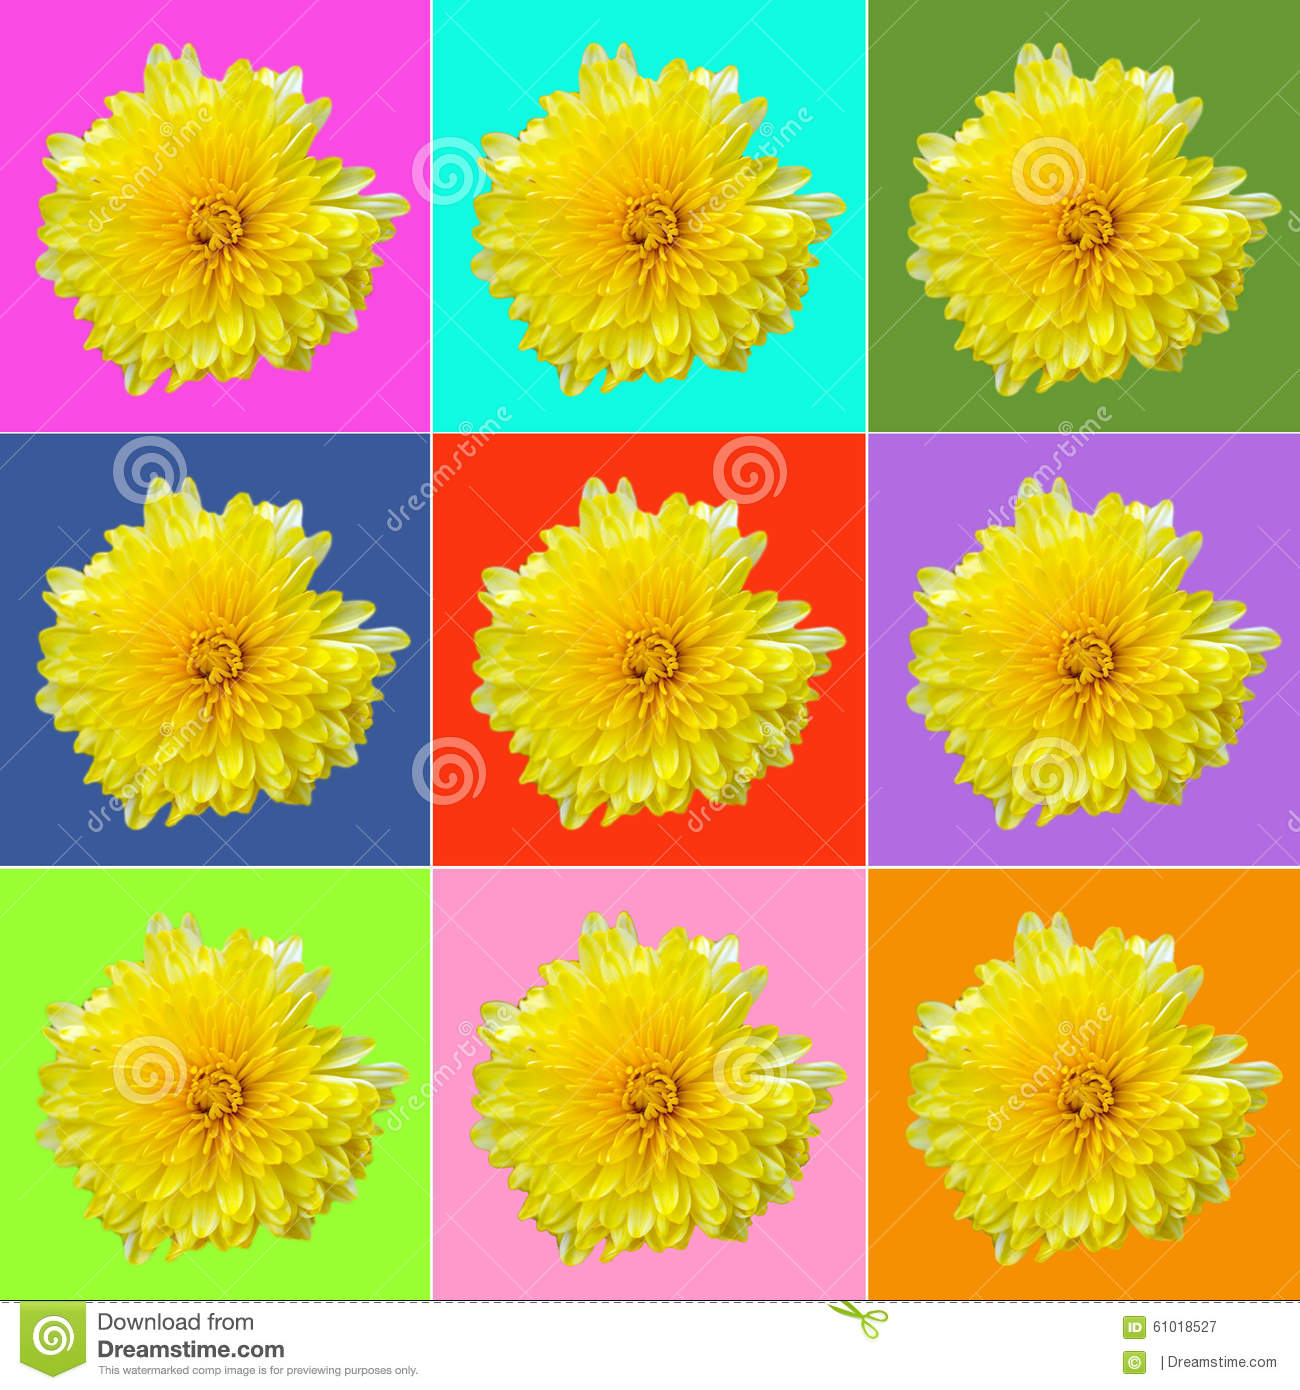 Collage mit gelber Chrysantheme